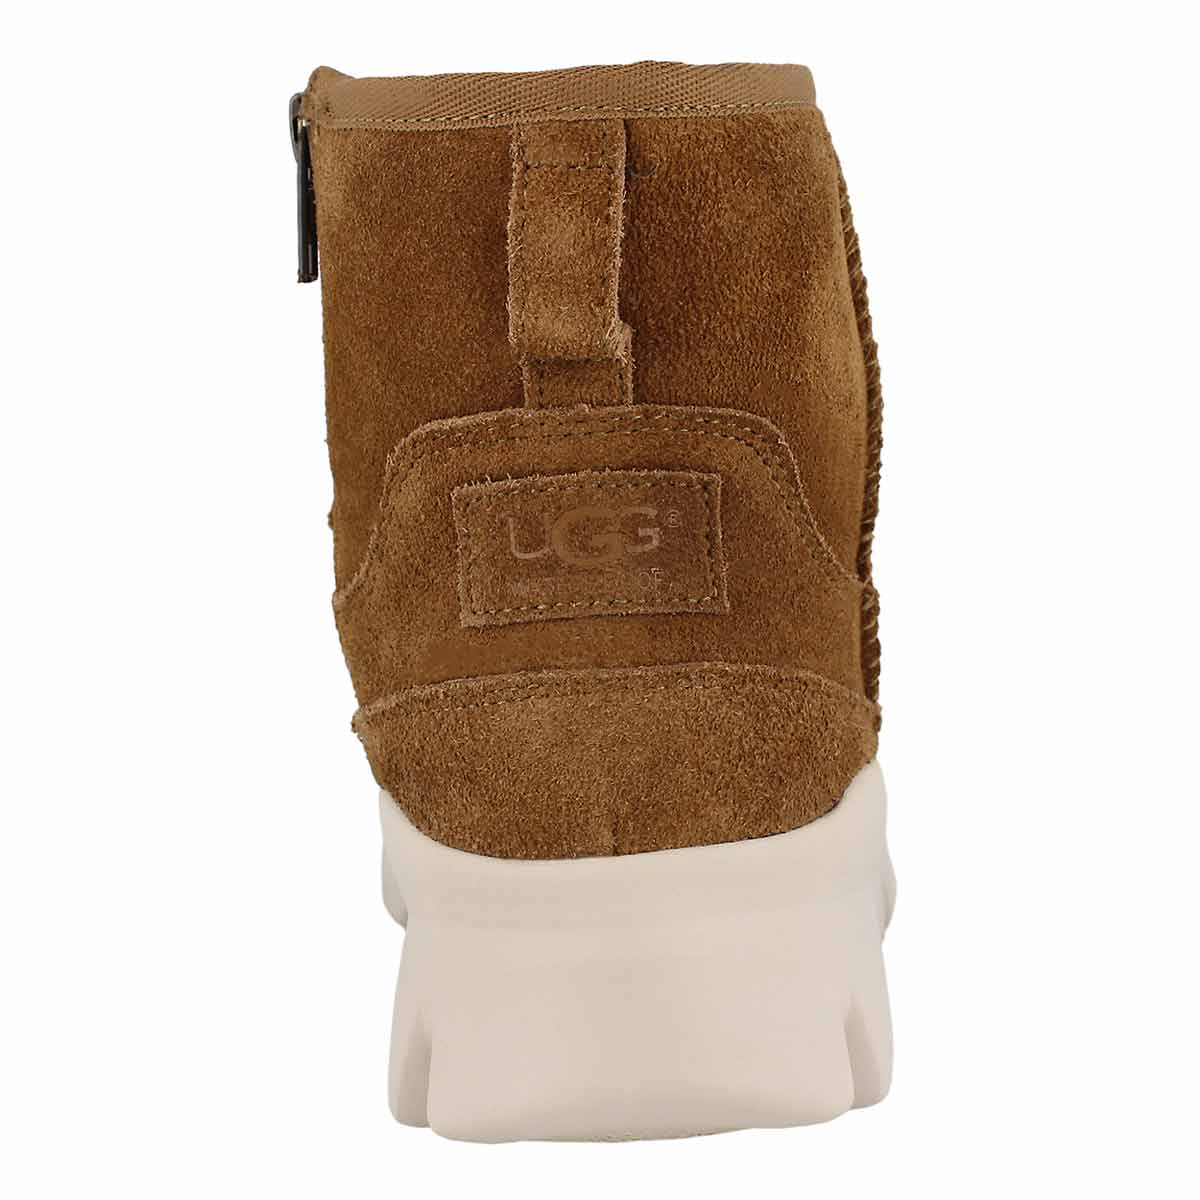 Lds Palomar chestnut wtpf winter boot